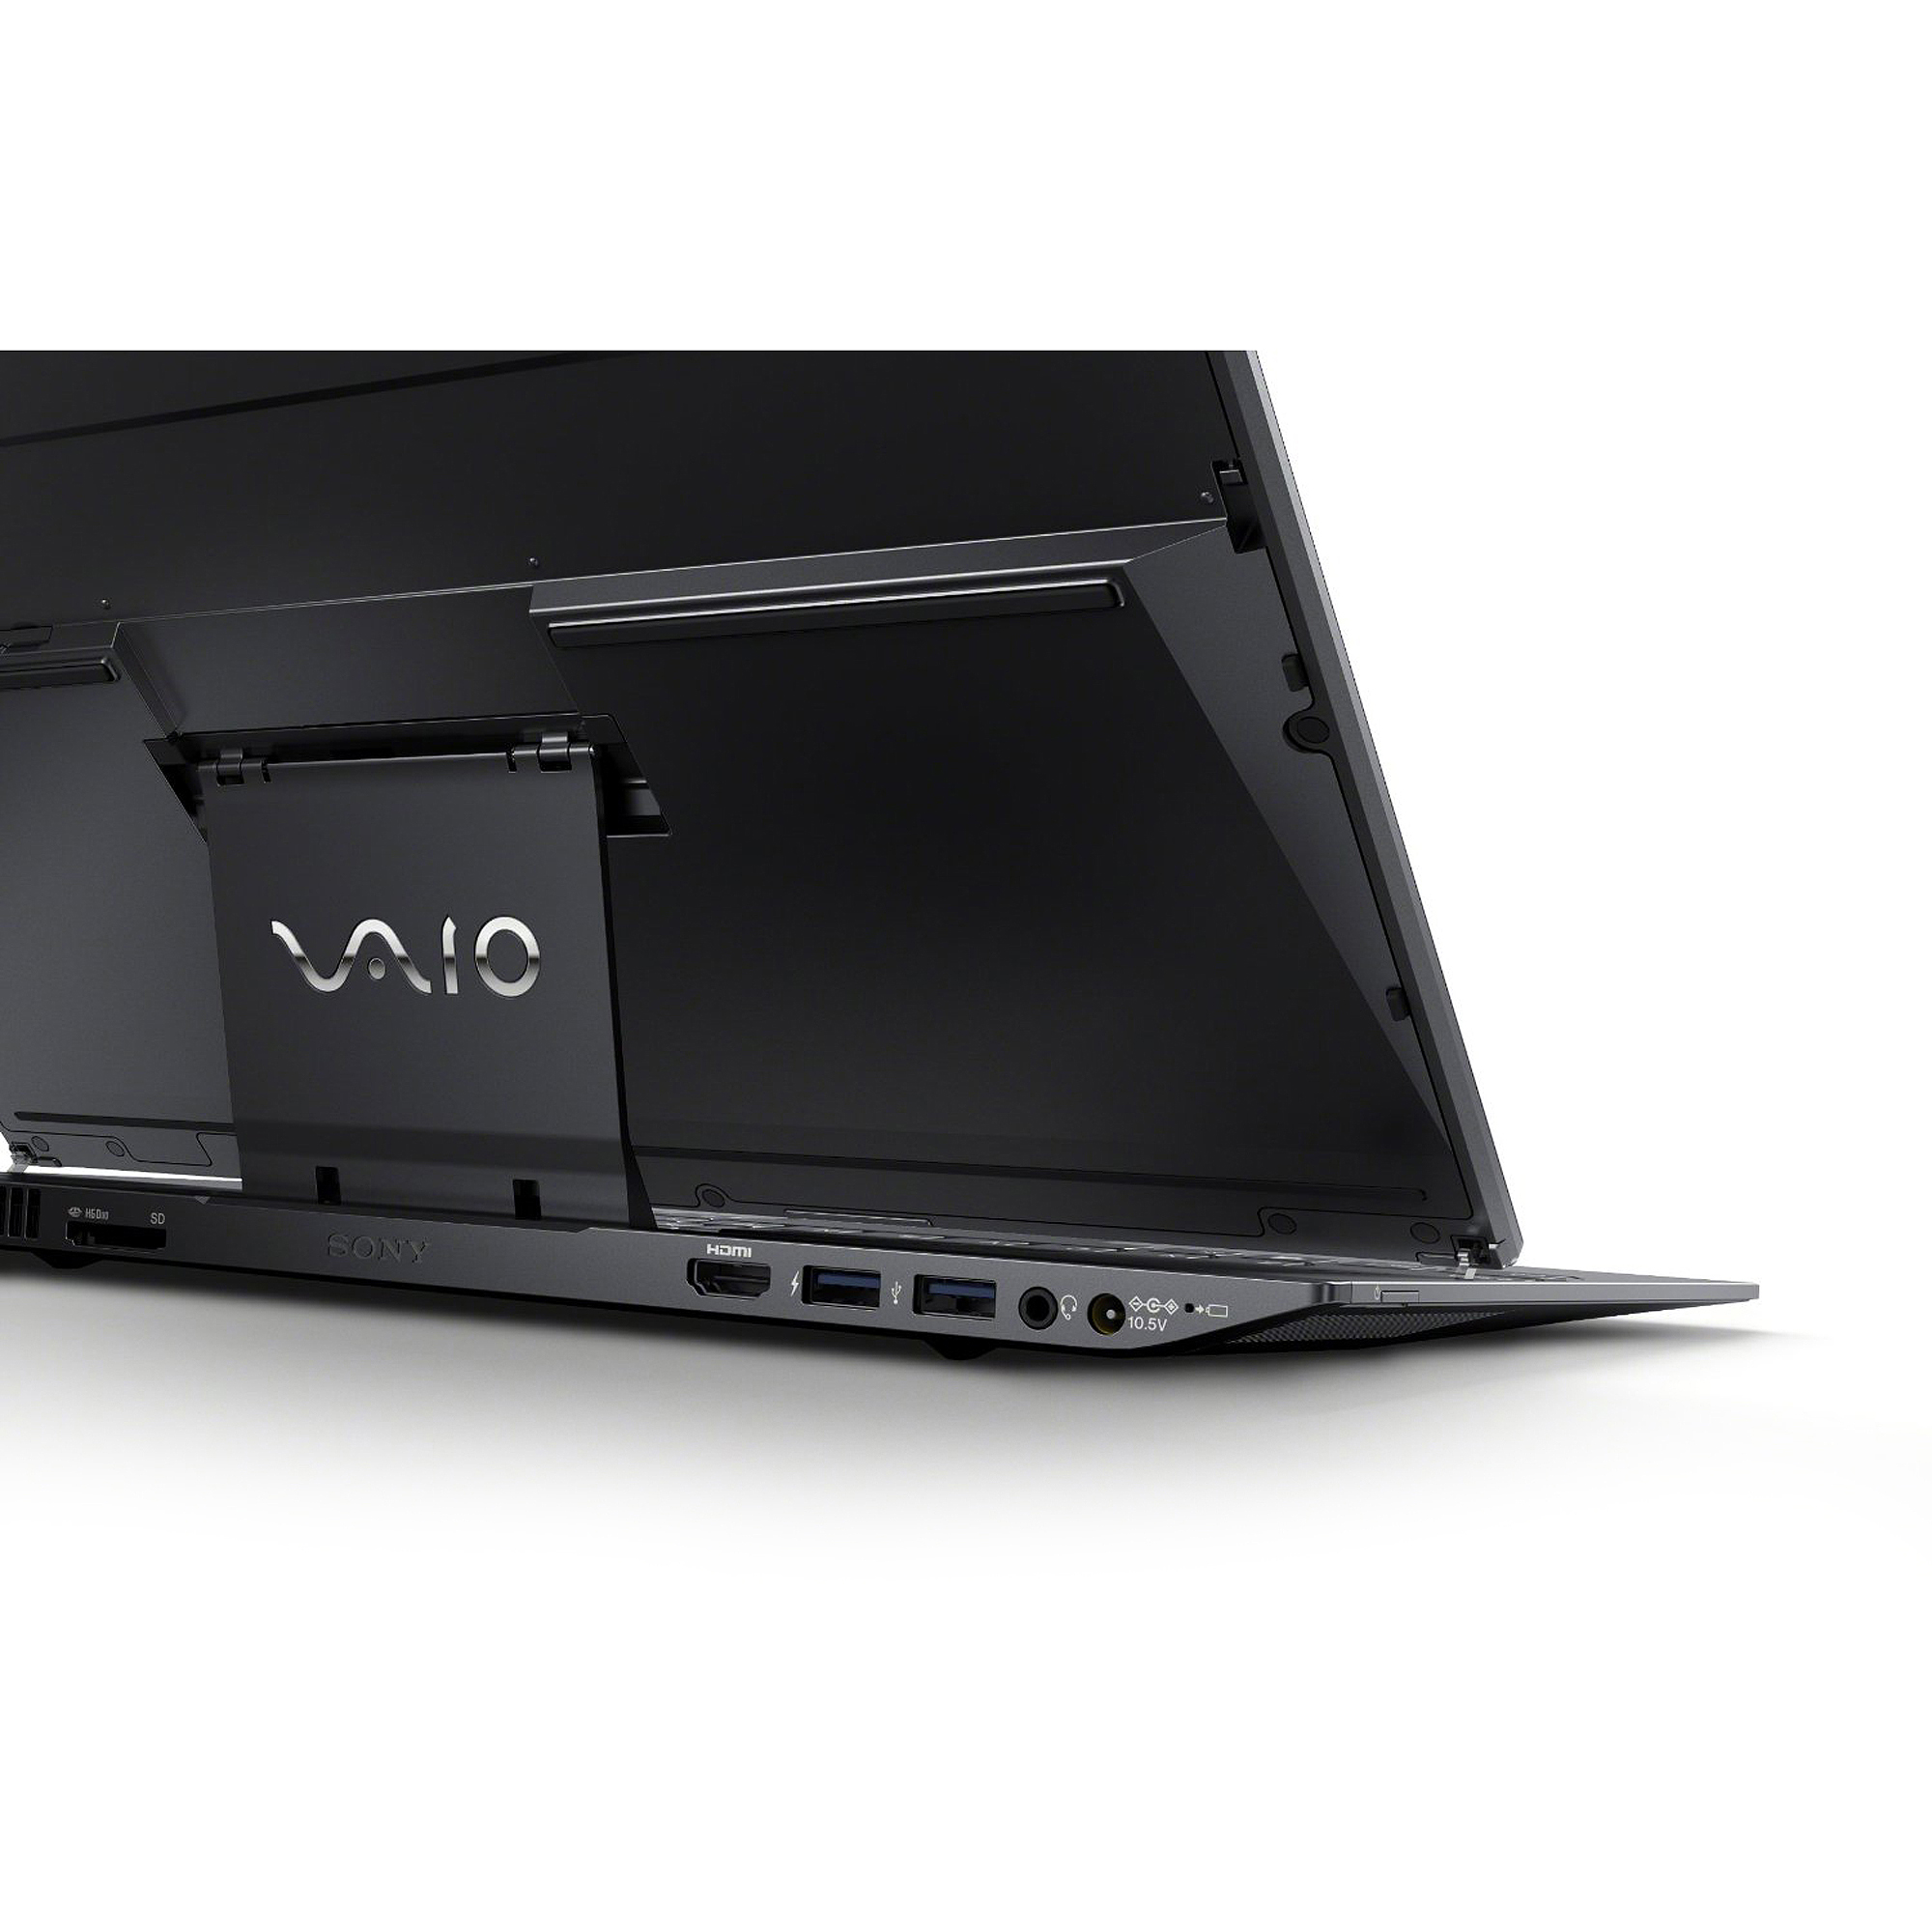 Dual core processor 4gb memory touch screen 128gb ssd and windows 8